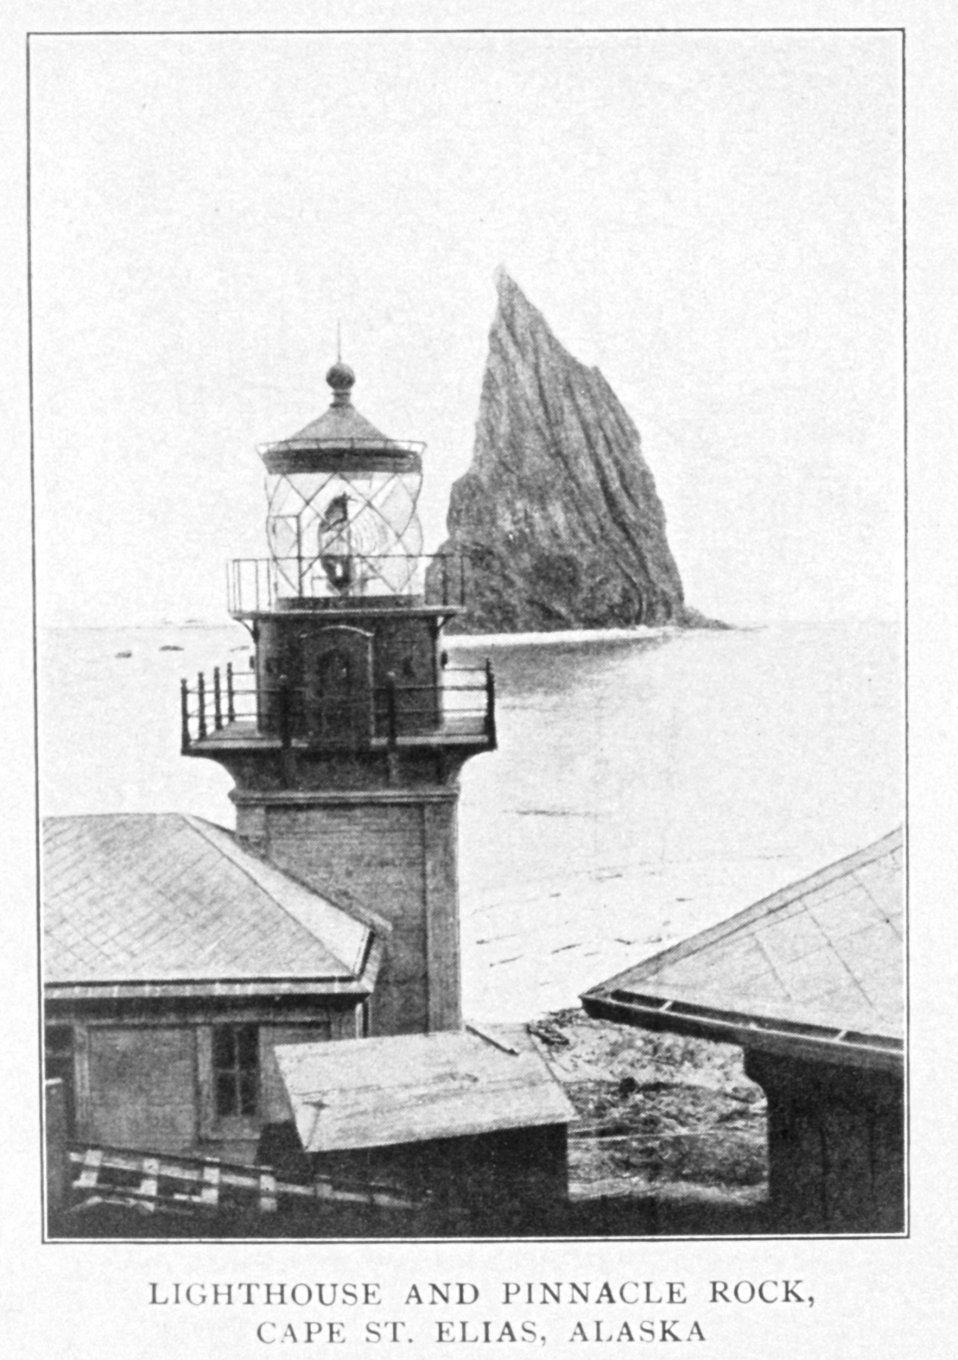 Lighthouse and Pinnacle Rock, Cape St. Elias, Alaska.  In: 'Lighthouses and Lightships of the United States' by George R. Putnam, p. 148,  1917.  Houghton Mifflin and Company, Boston. Library Call No. 527.7 P98.